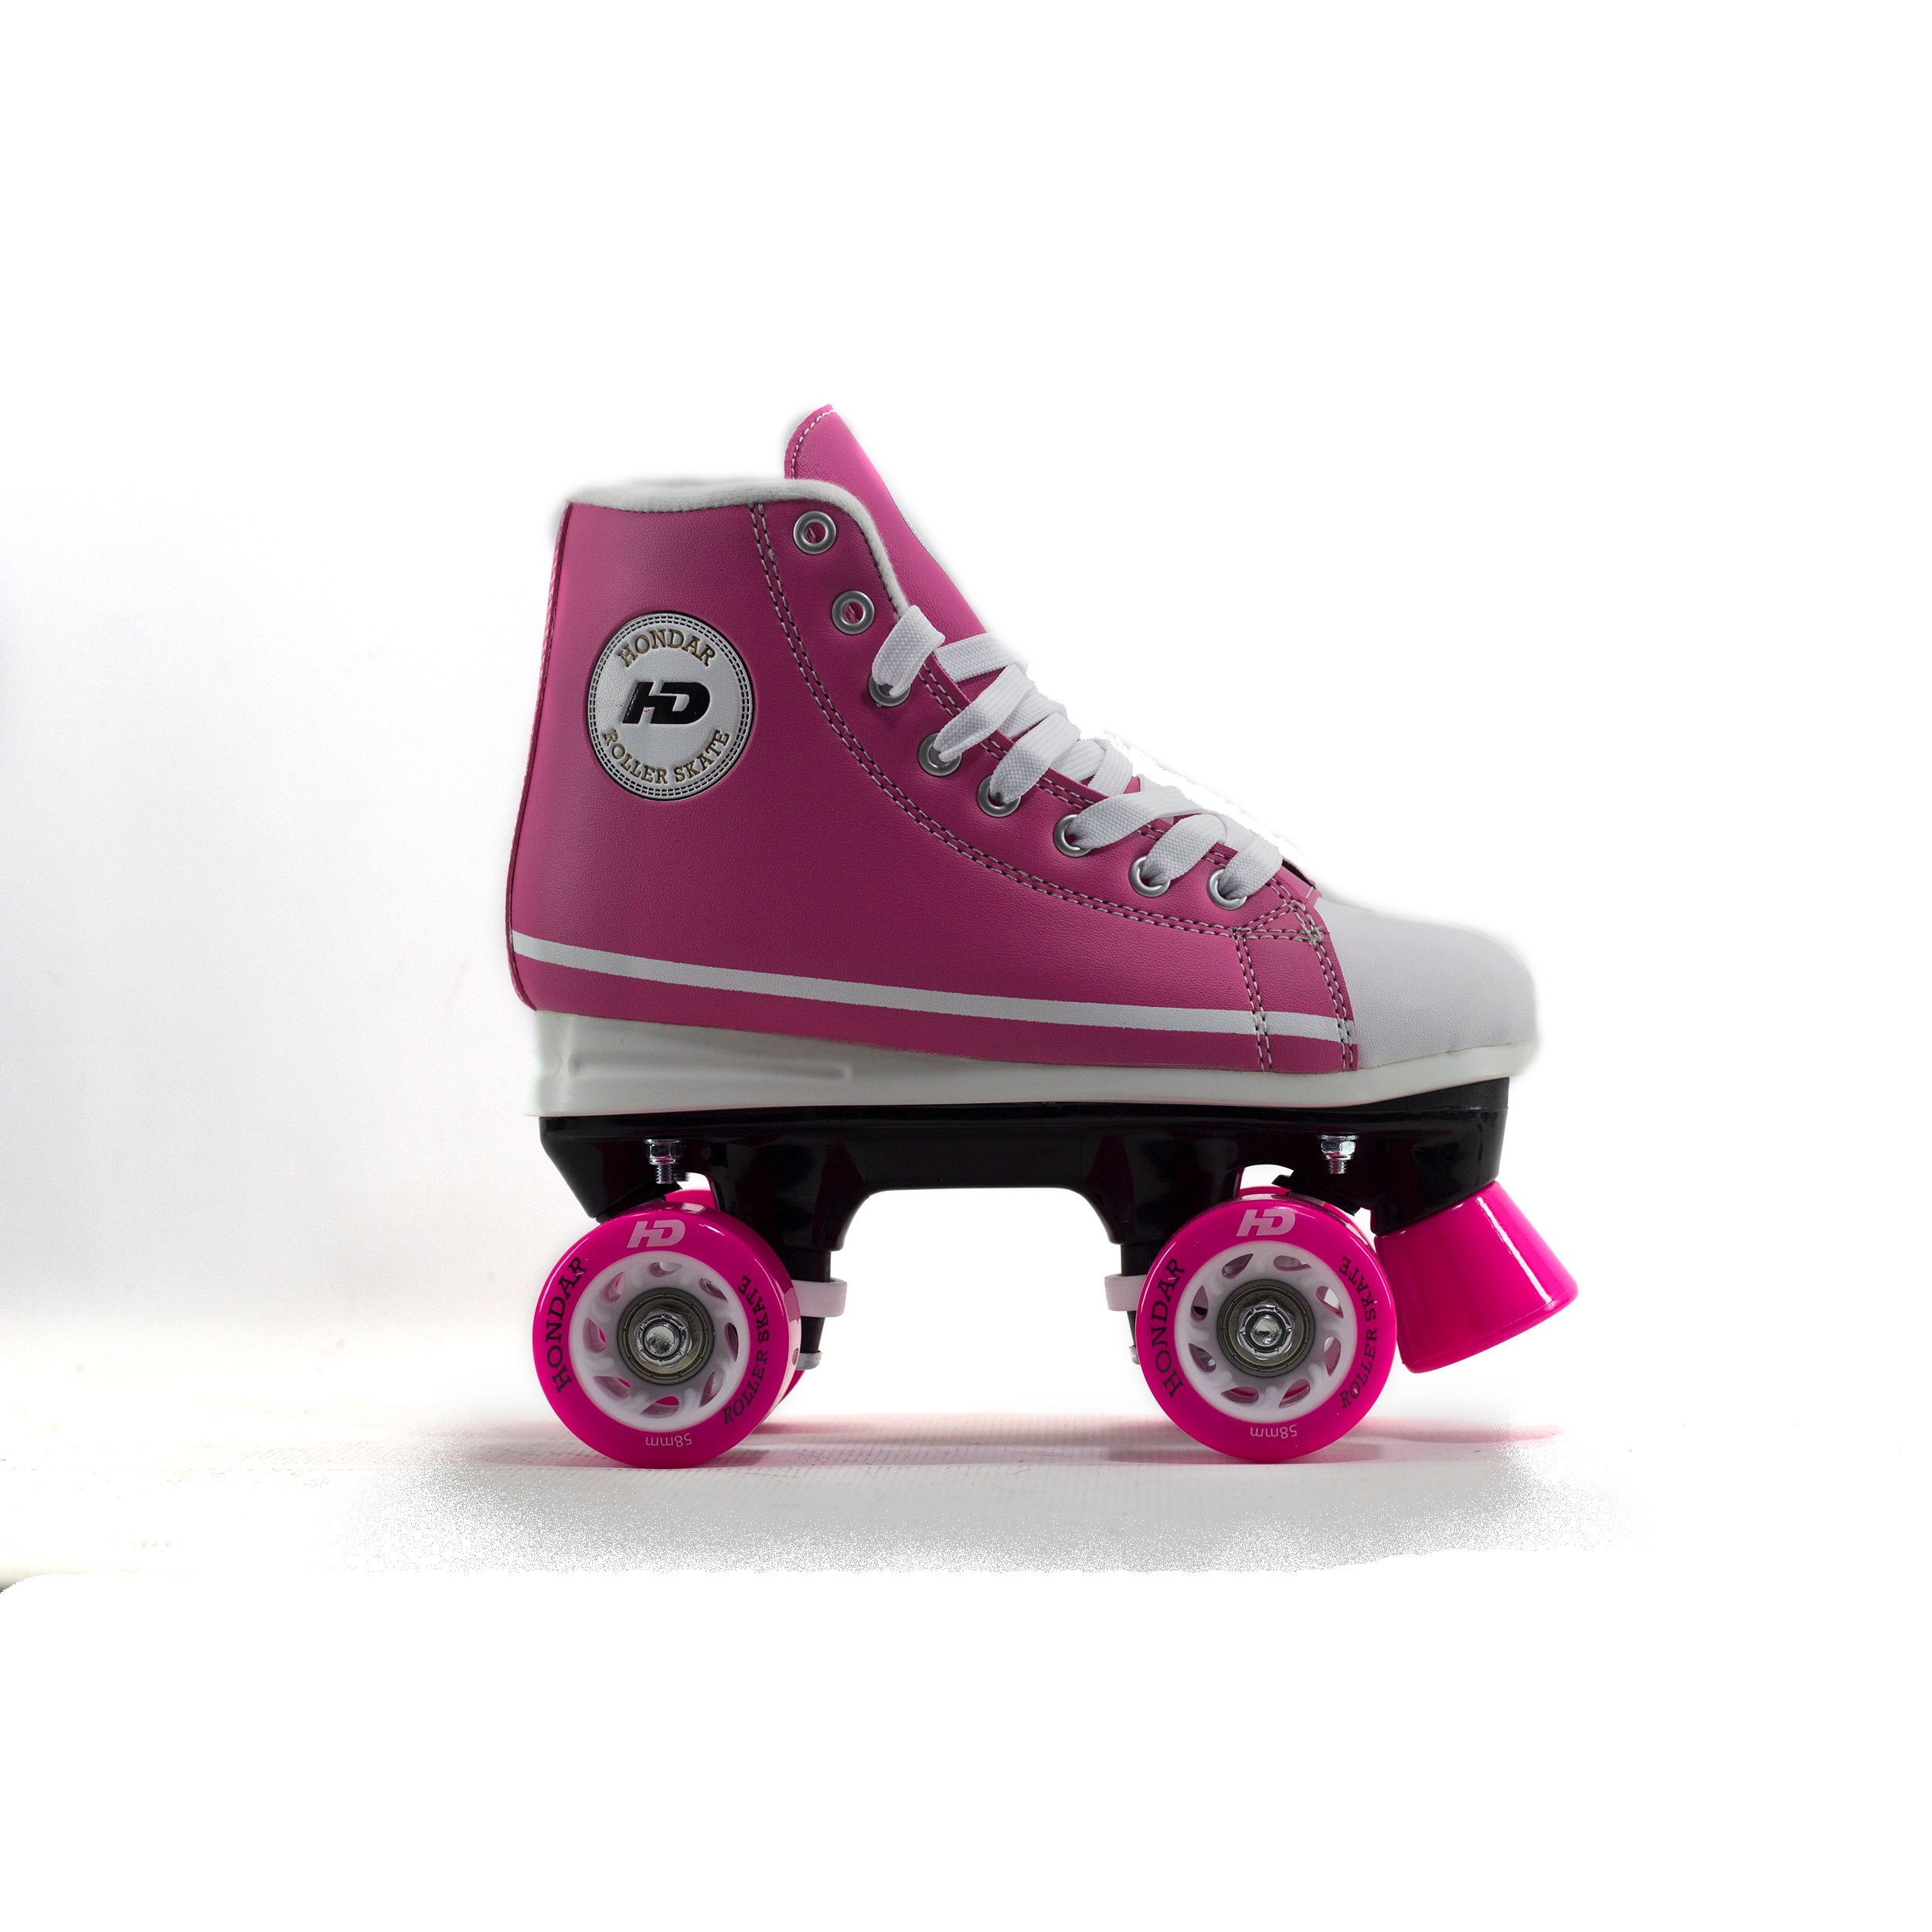 Patins Quad Tradicional HD All Star Rosa Abec-7